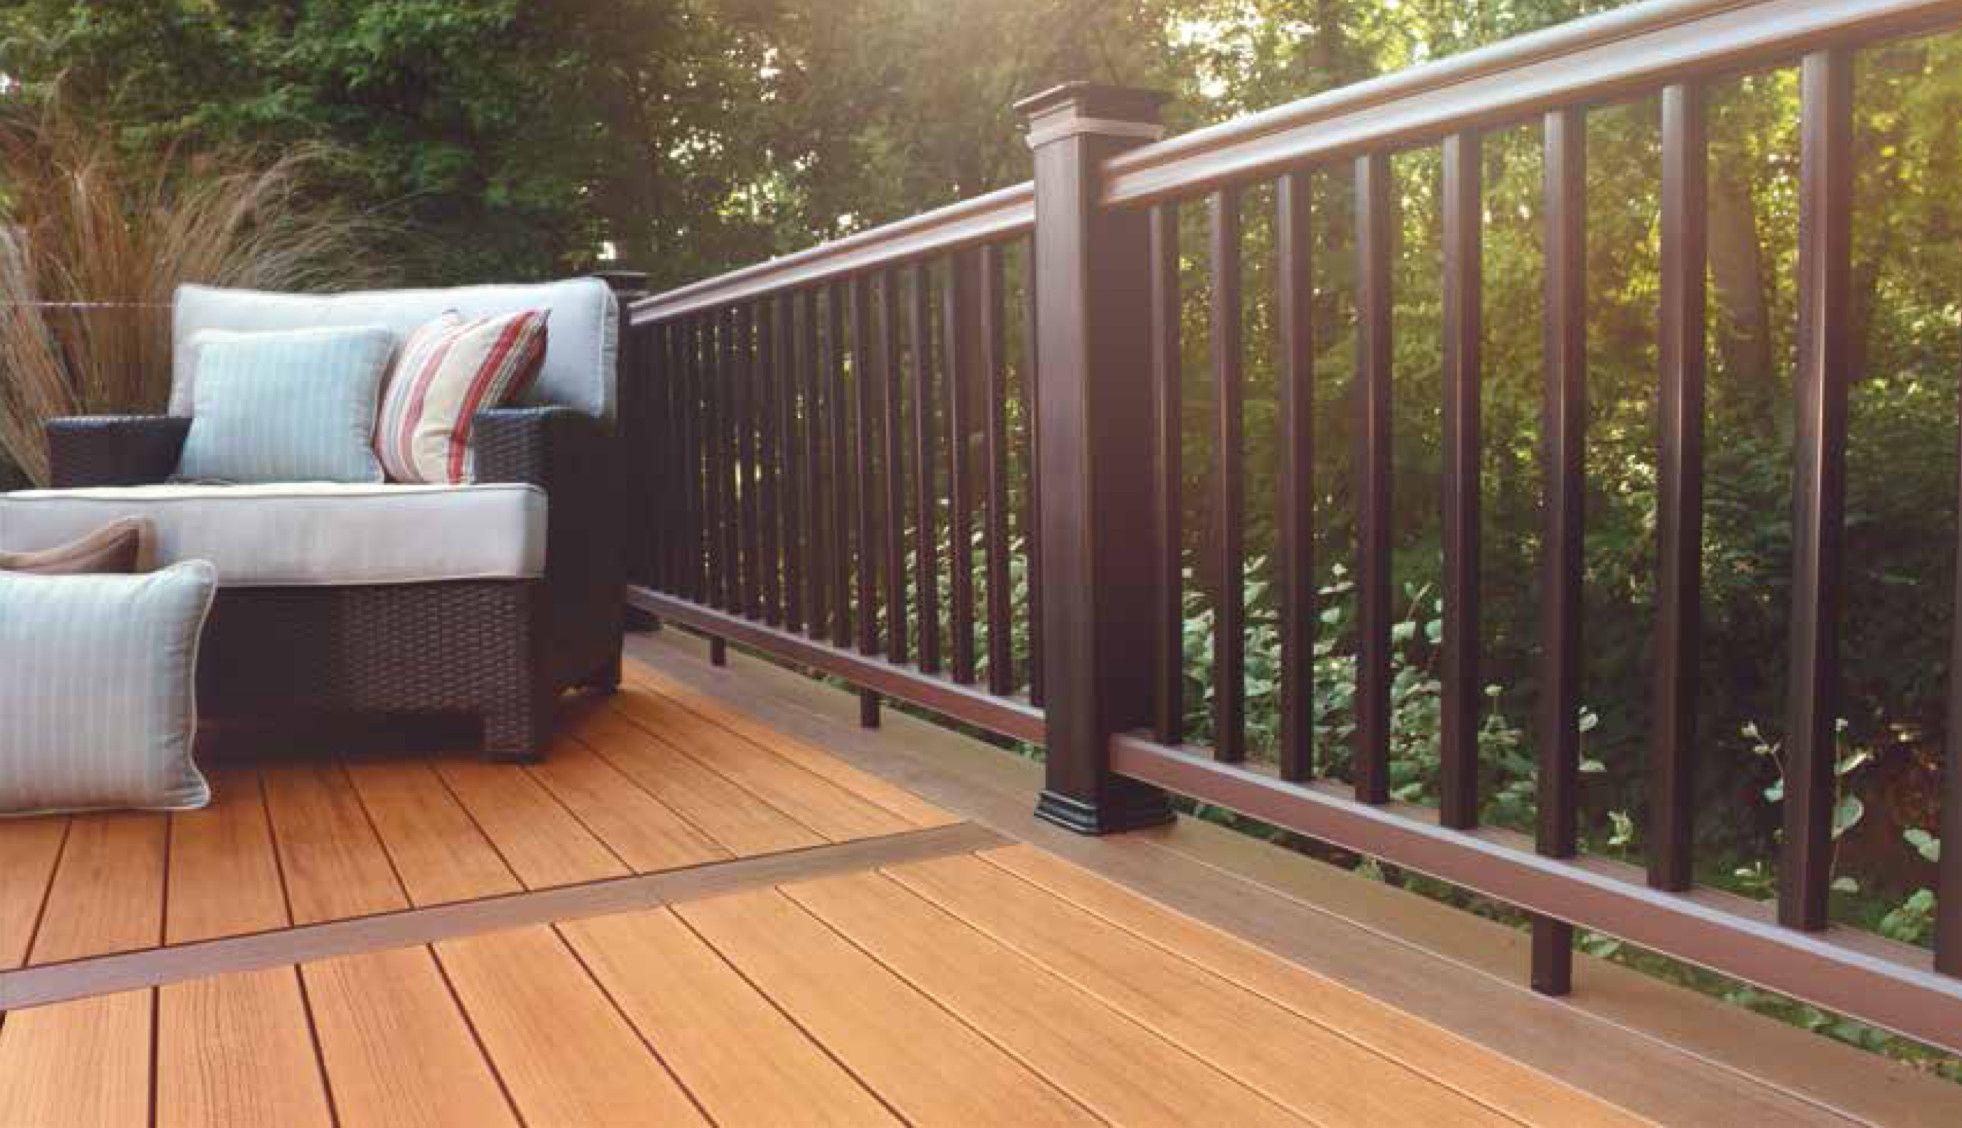 Timbertech Tropical Decking Collection In Teak Design The Deck Of Your Dreams At Meek S